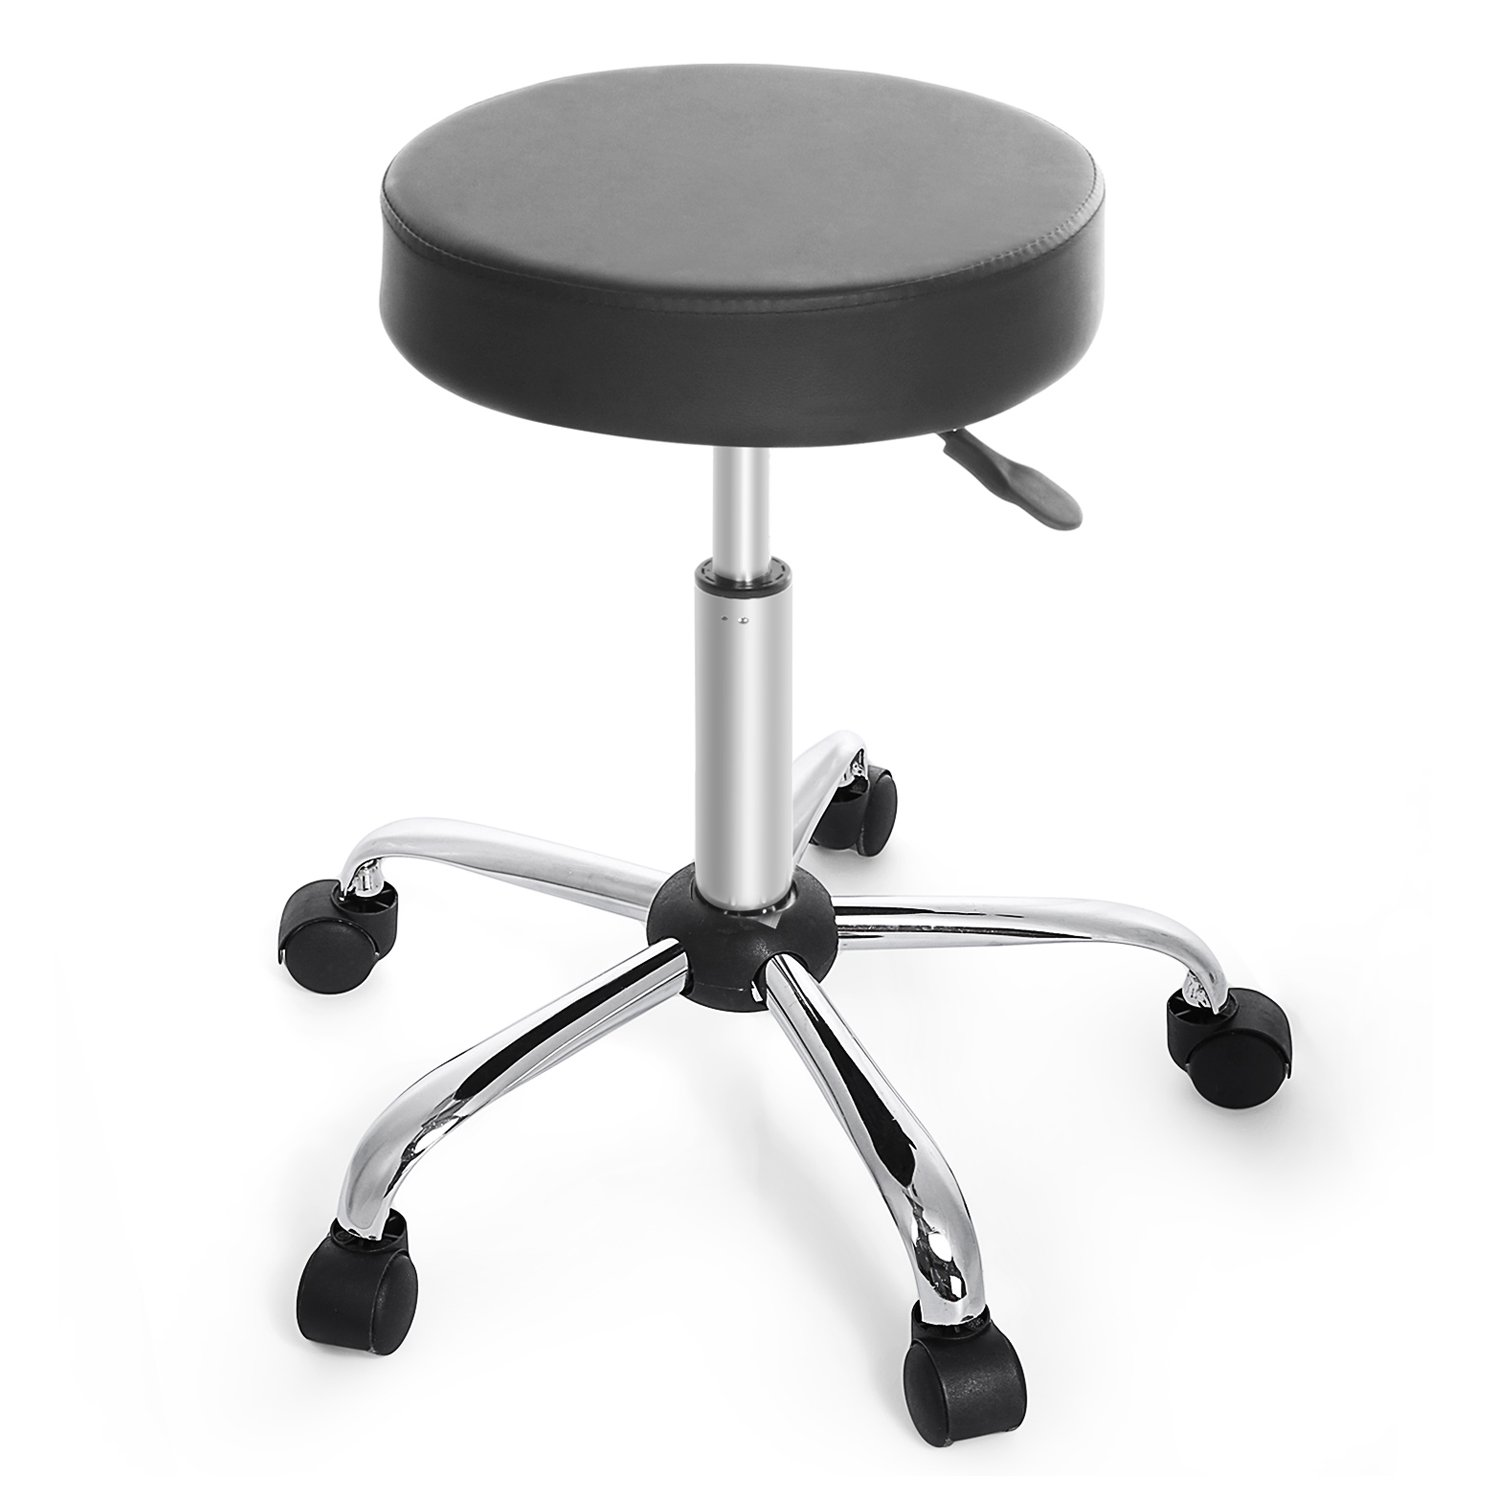 ebay work mechanics pin seat garage rolling height shop adjustable chair stool swivel